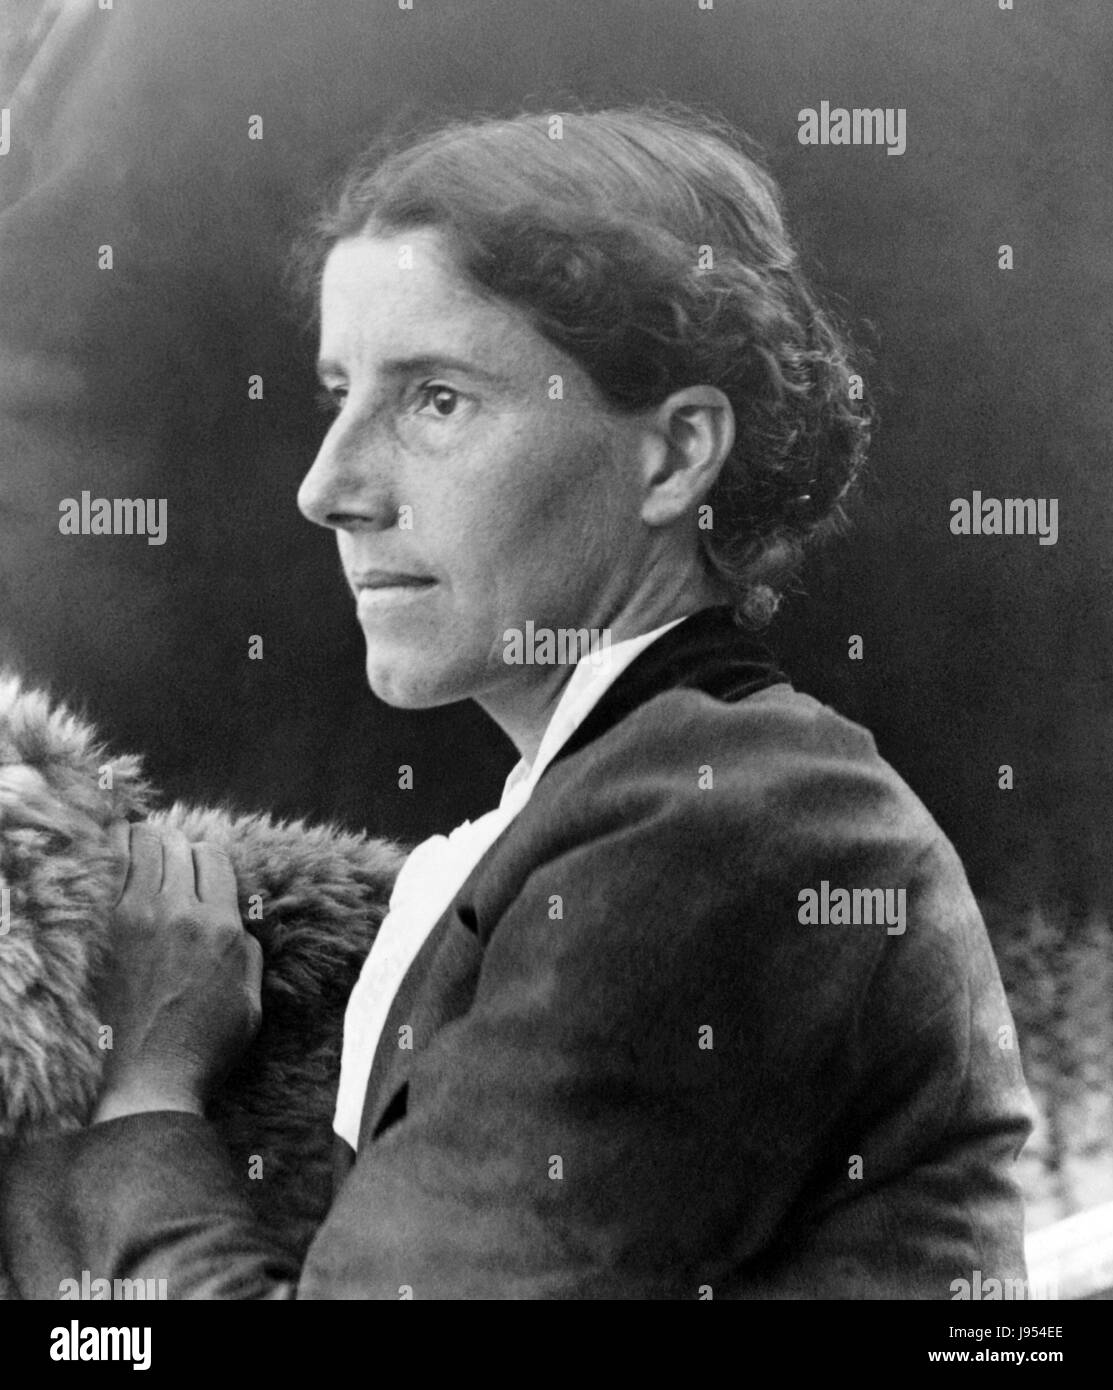 CHARLOTTE GILLMAN (1860-1935) American feminist, writer, and social reformer about 1900 - Stock Image